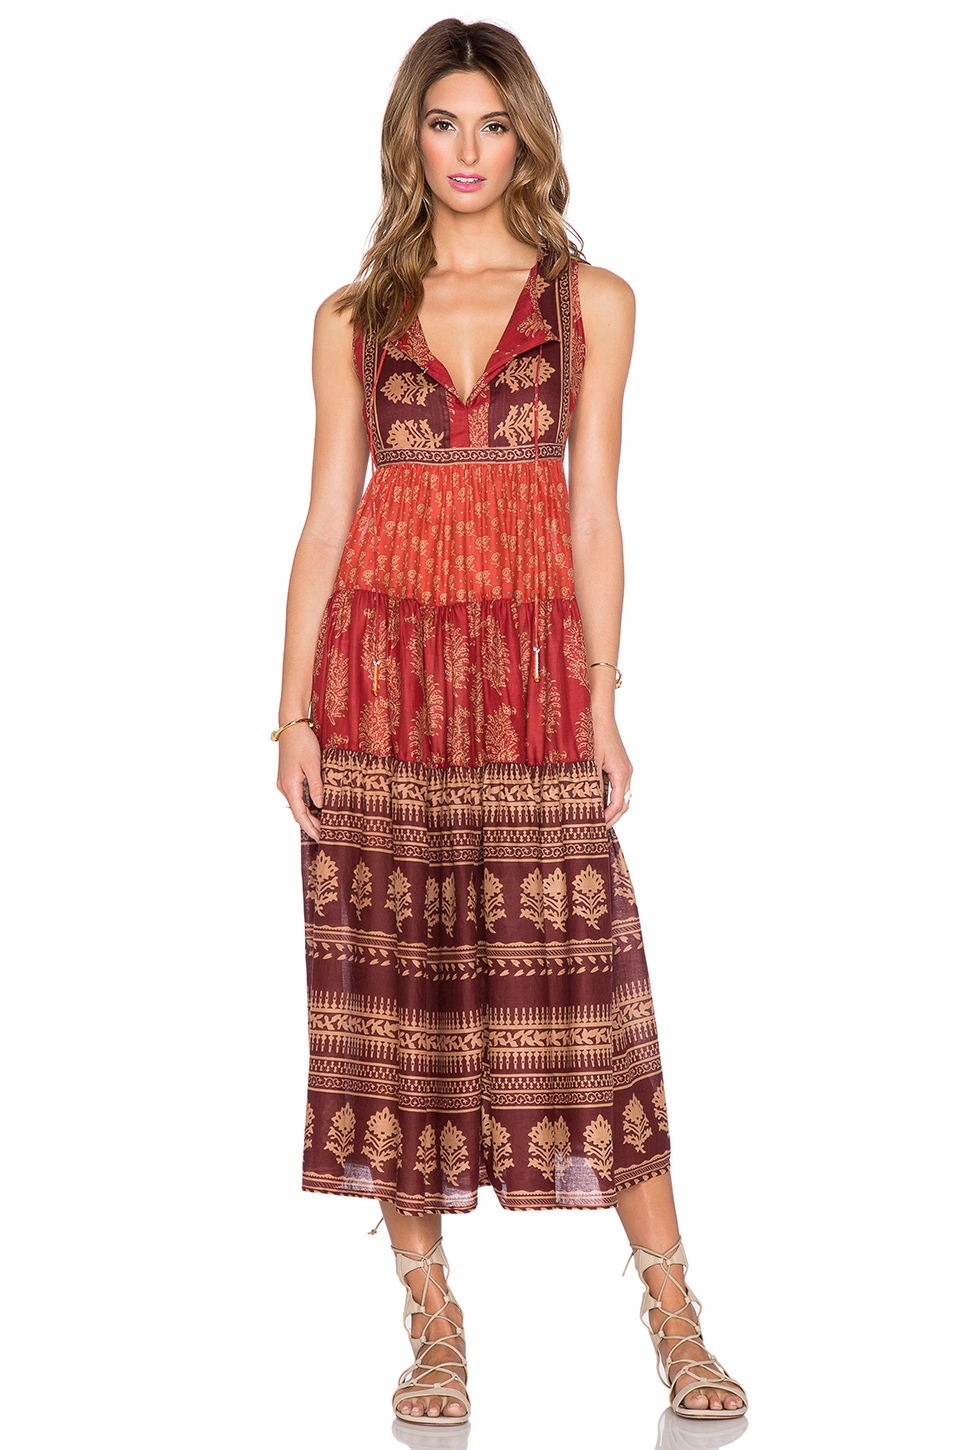 Raga Indian Summer Maxi Dress in Red - Lyst